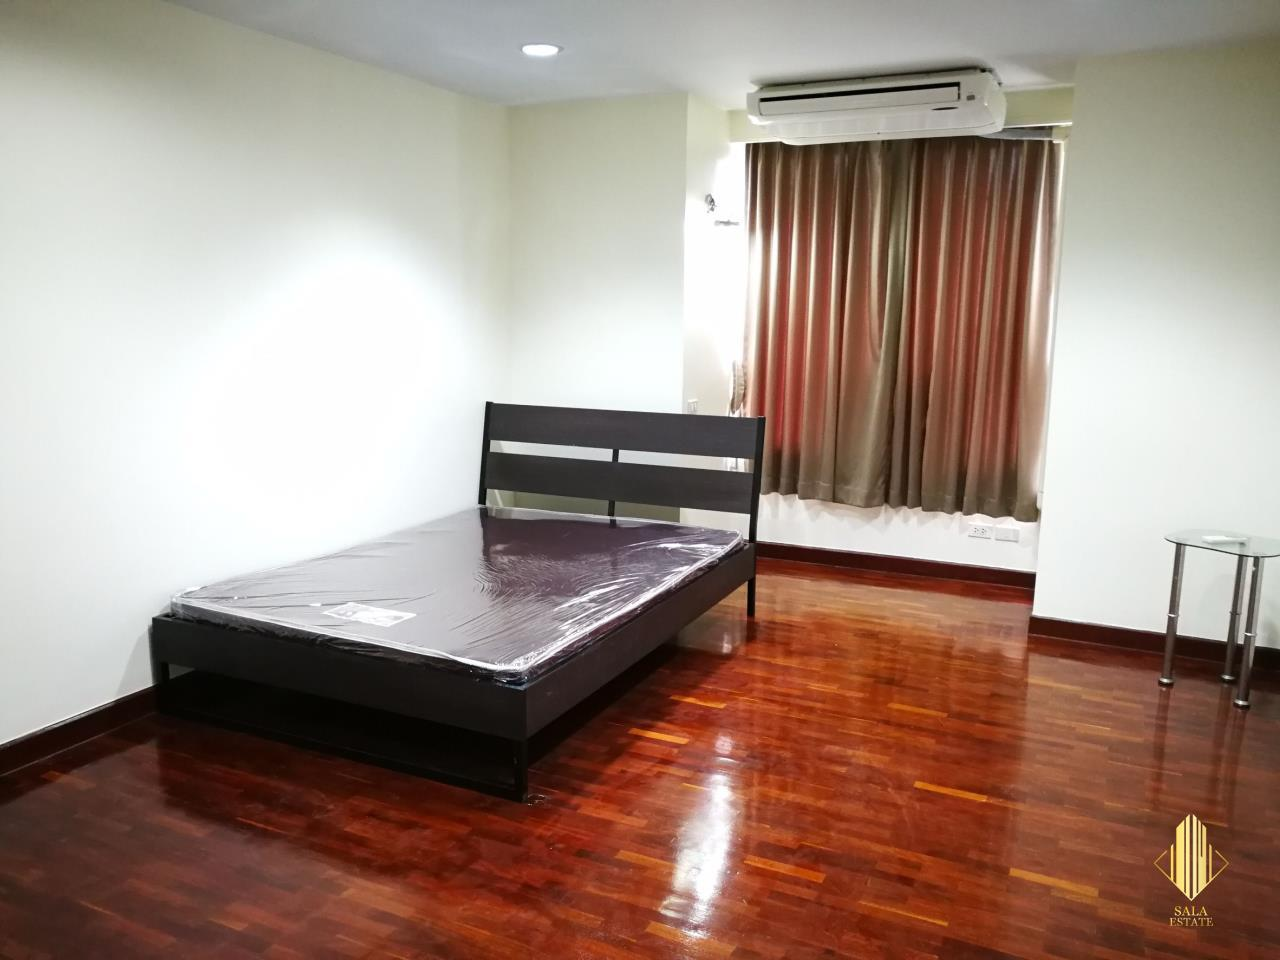 SALA ESTATE Agency's (FOR RENT) TRIDHOS CITY MARINA – RIVERSIDE - NEAR ICON SIAM-PET ALLOWED, 3 BEDROOMS 4 BATHROOMS, 4 FLOORS, 300 SQM, FULLY FURNISHED, CITY VIEW 9